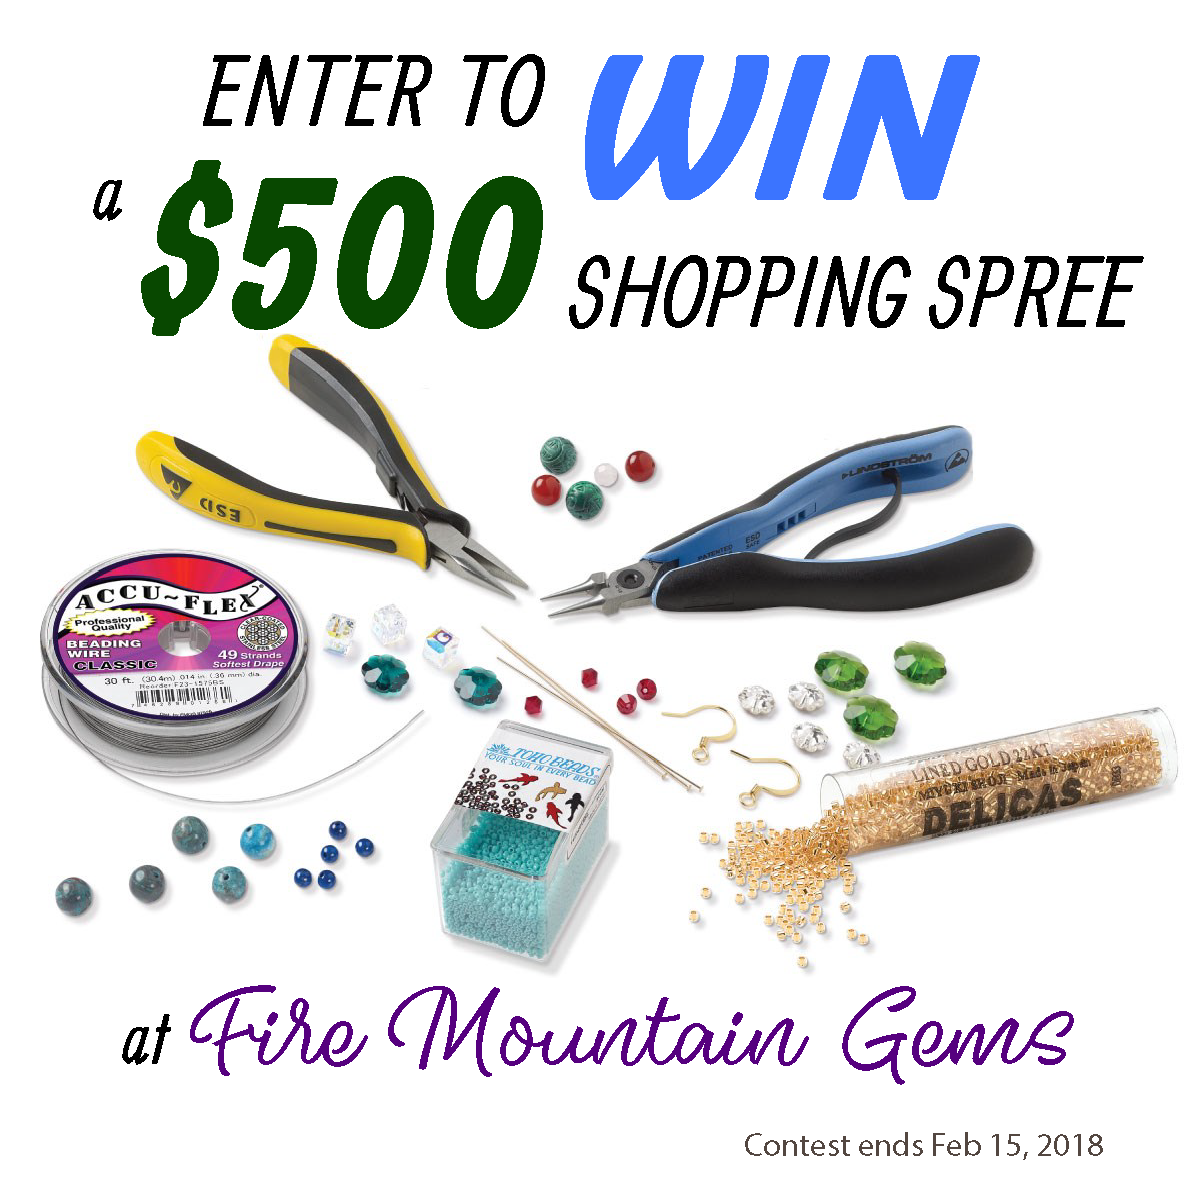 The year is starting off with some great giveaways, including a $500 Fire Mountain Gems shopping spree and a Foredom Flex Shaft! #contests #jewelry #jewelrysupplies #jewelrytools #beads #gemstones #wirewrapping